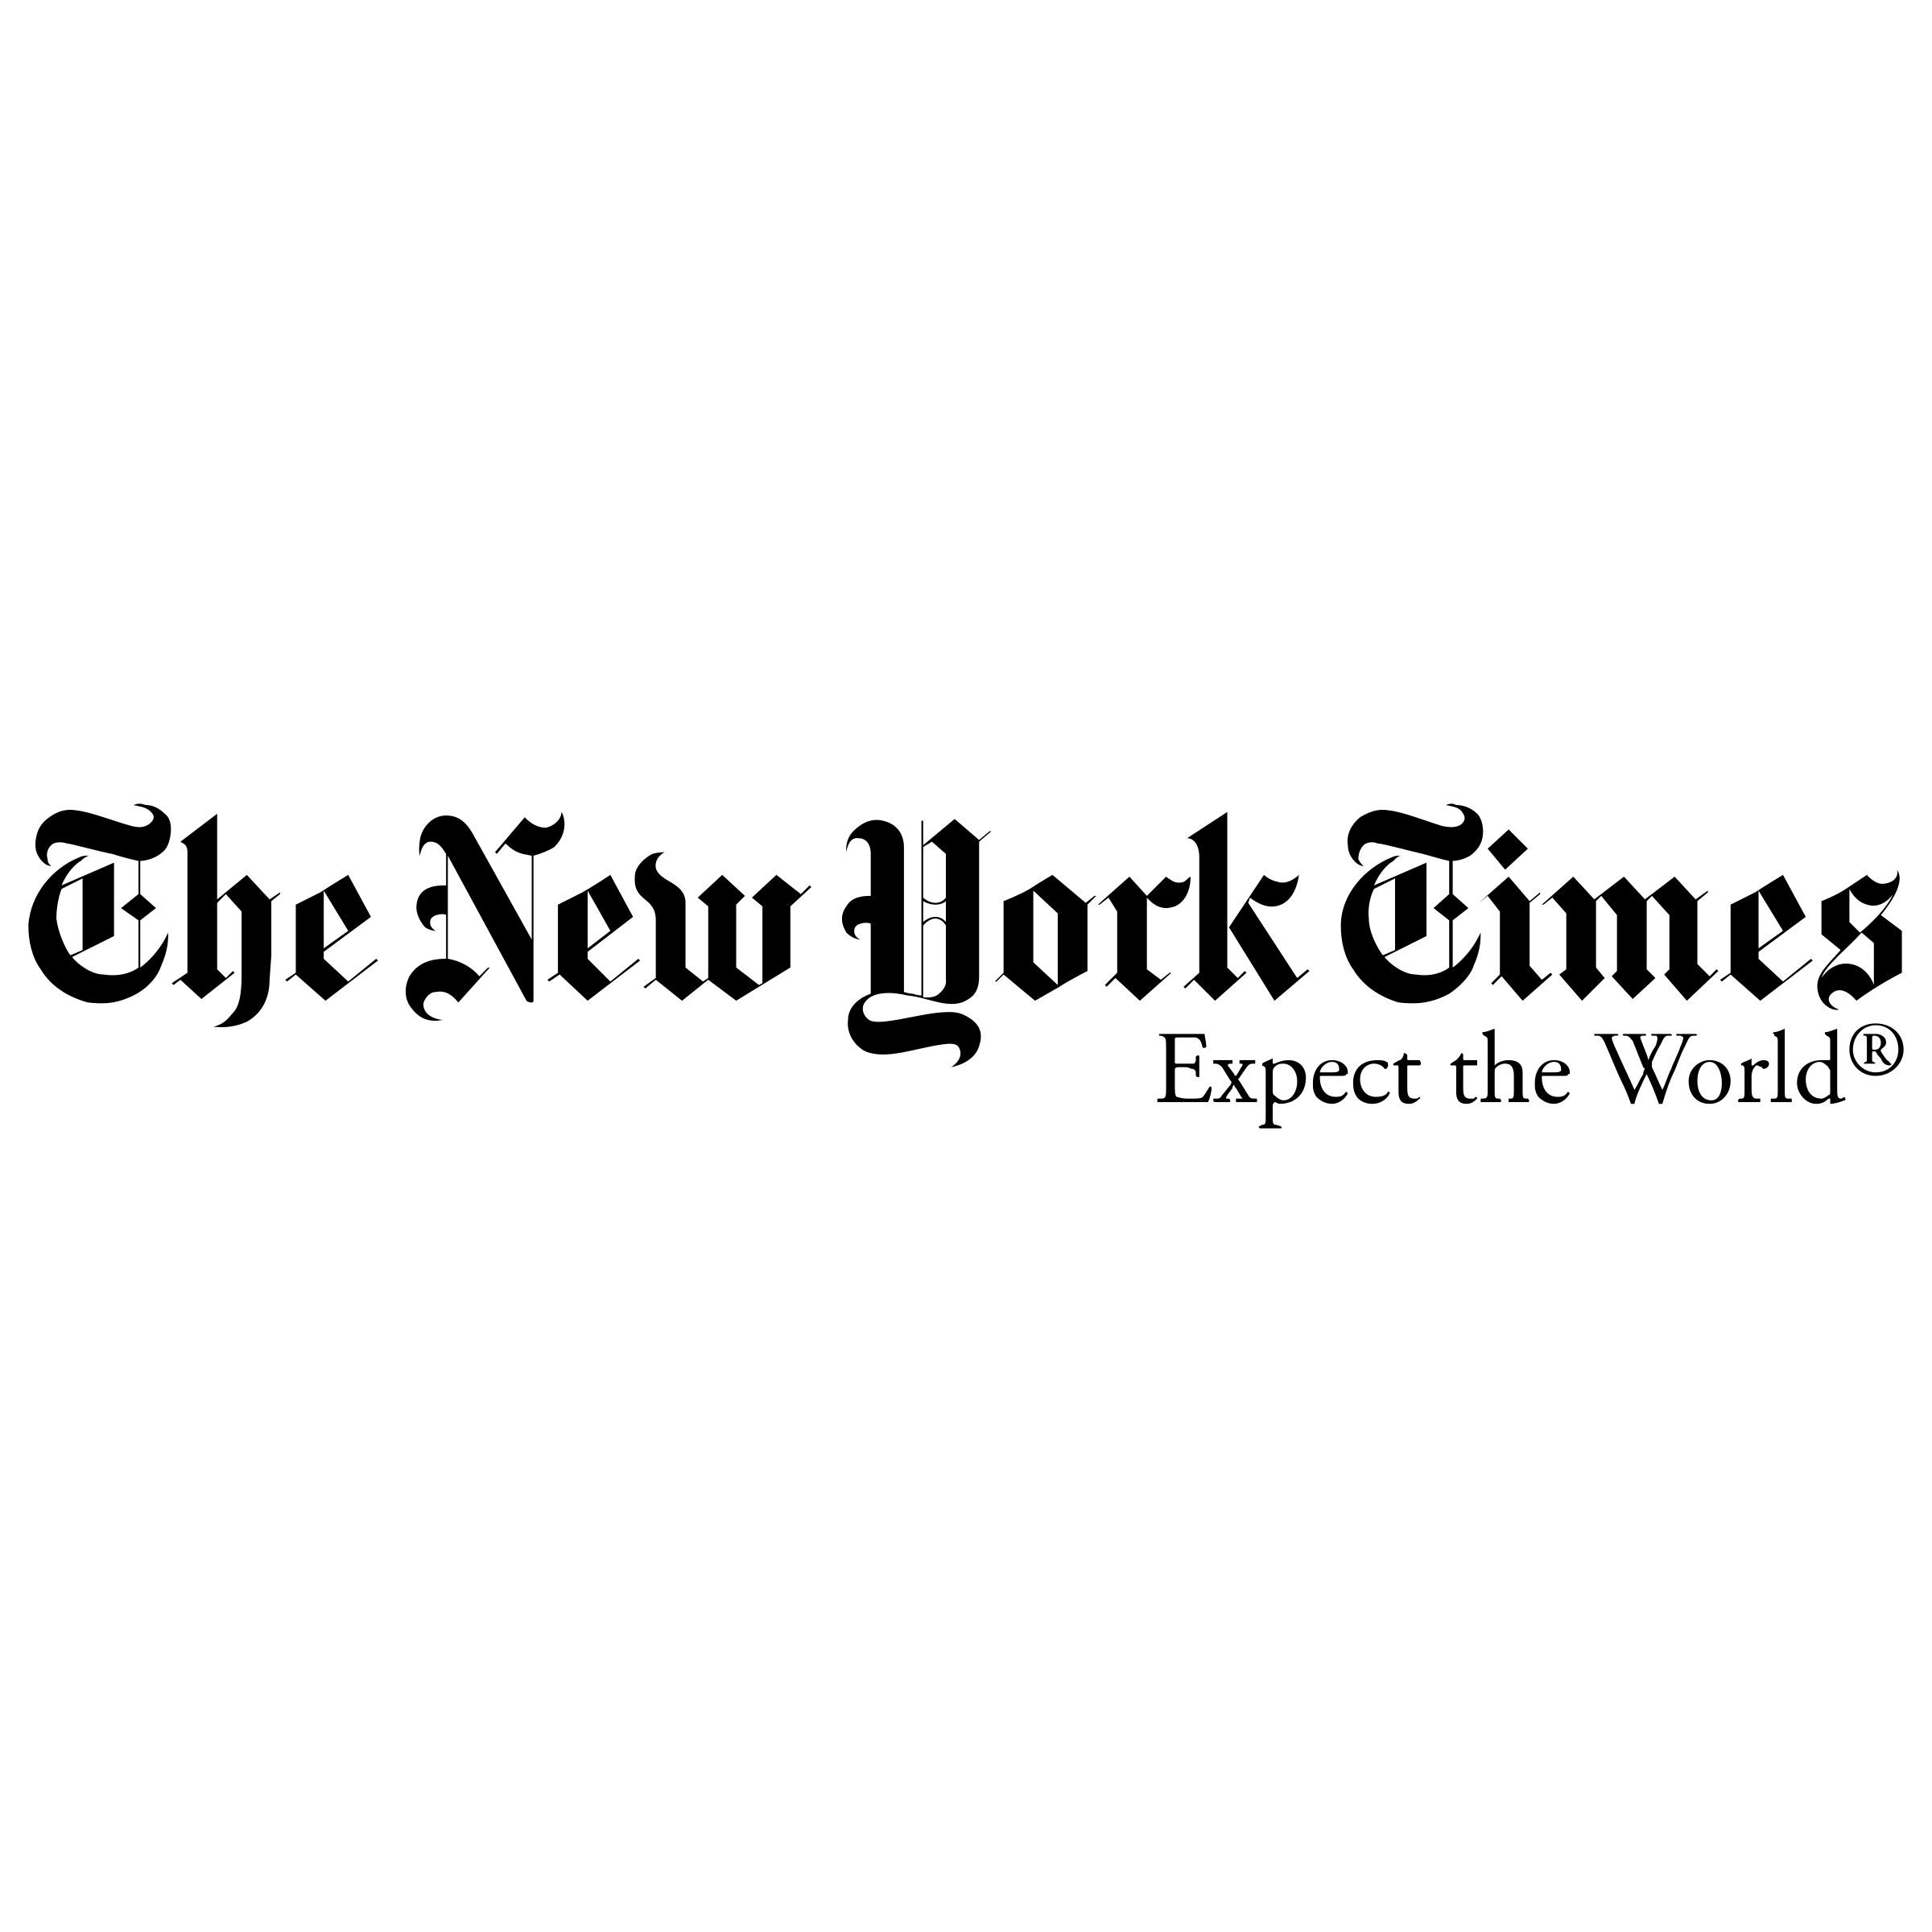 the-new-york-times-logo-png-transparent | heteroclito cave ...